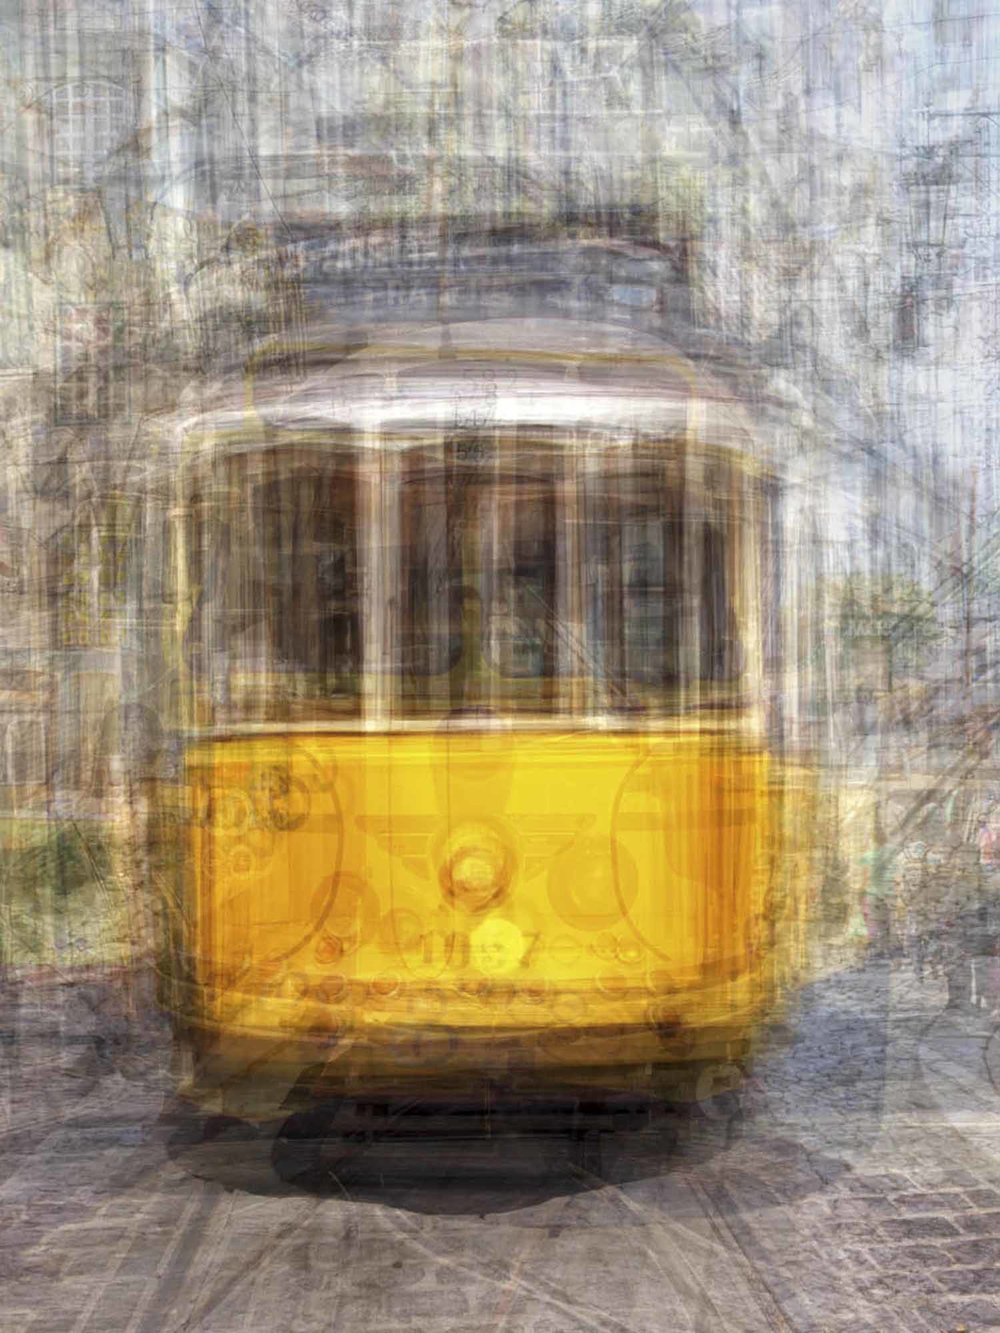 Street Car, Yellow